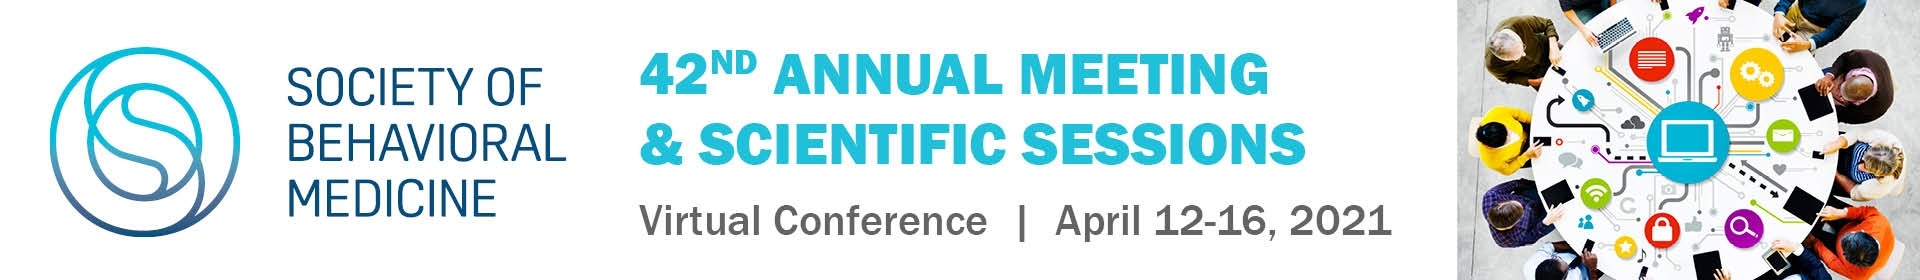 41st Annual Meeting & Scientific Sessions Event Banner